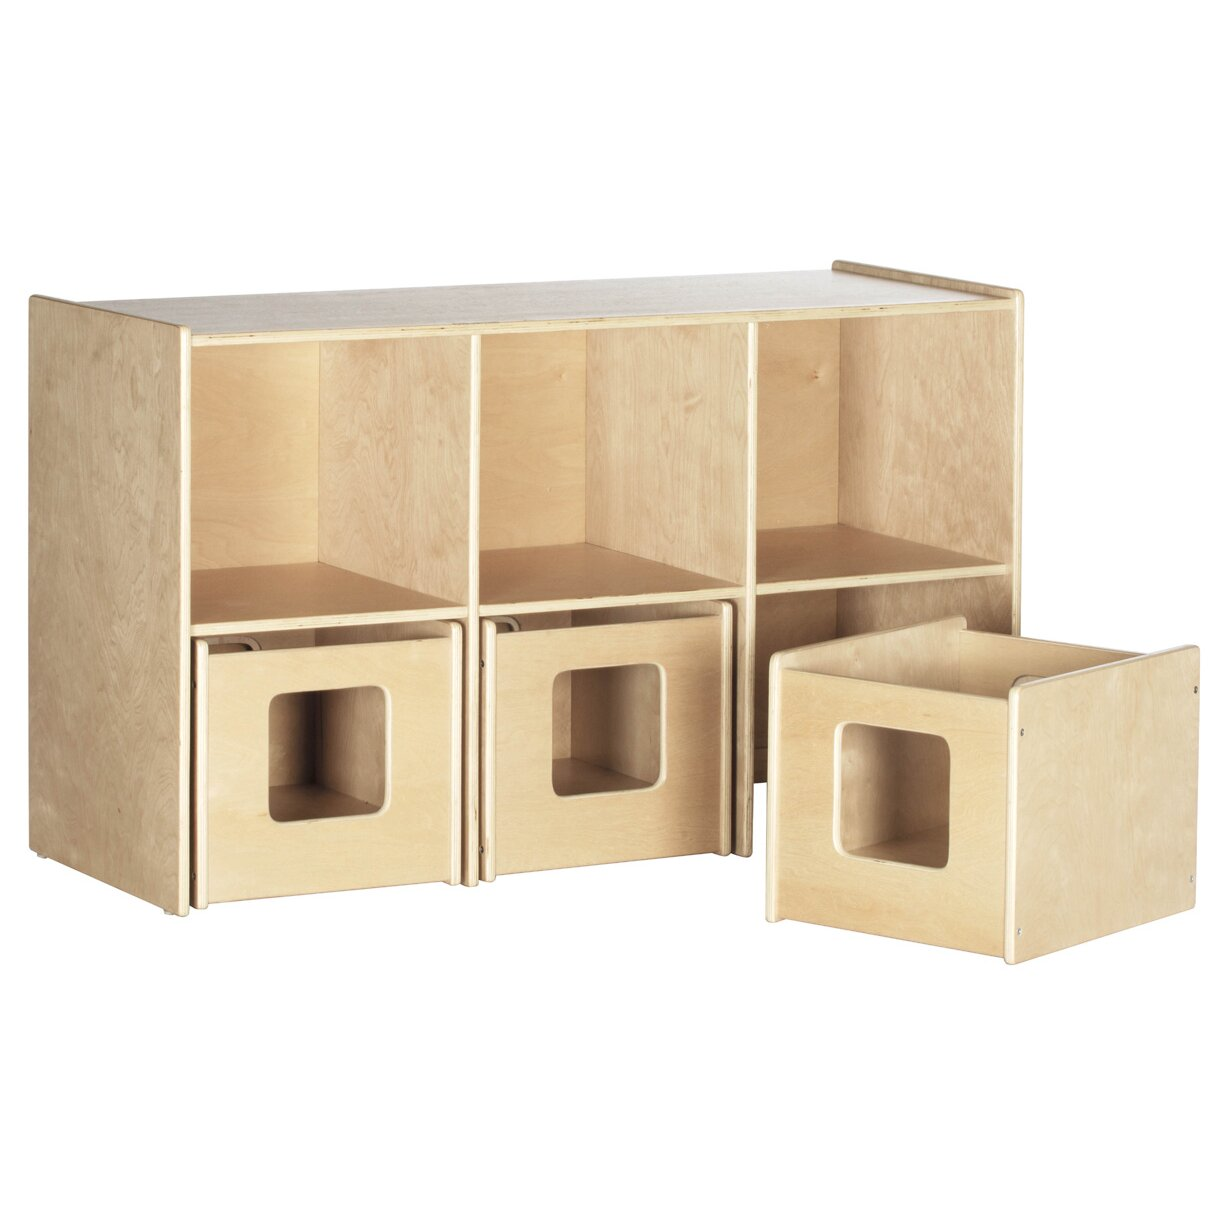 Ecr4kids see store shelf 6 compartment cubby reviews for Wayfair store